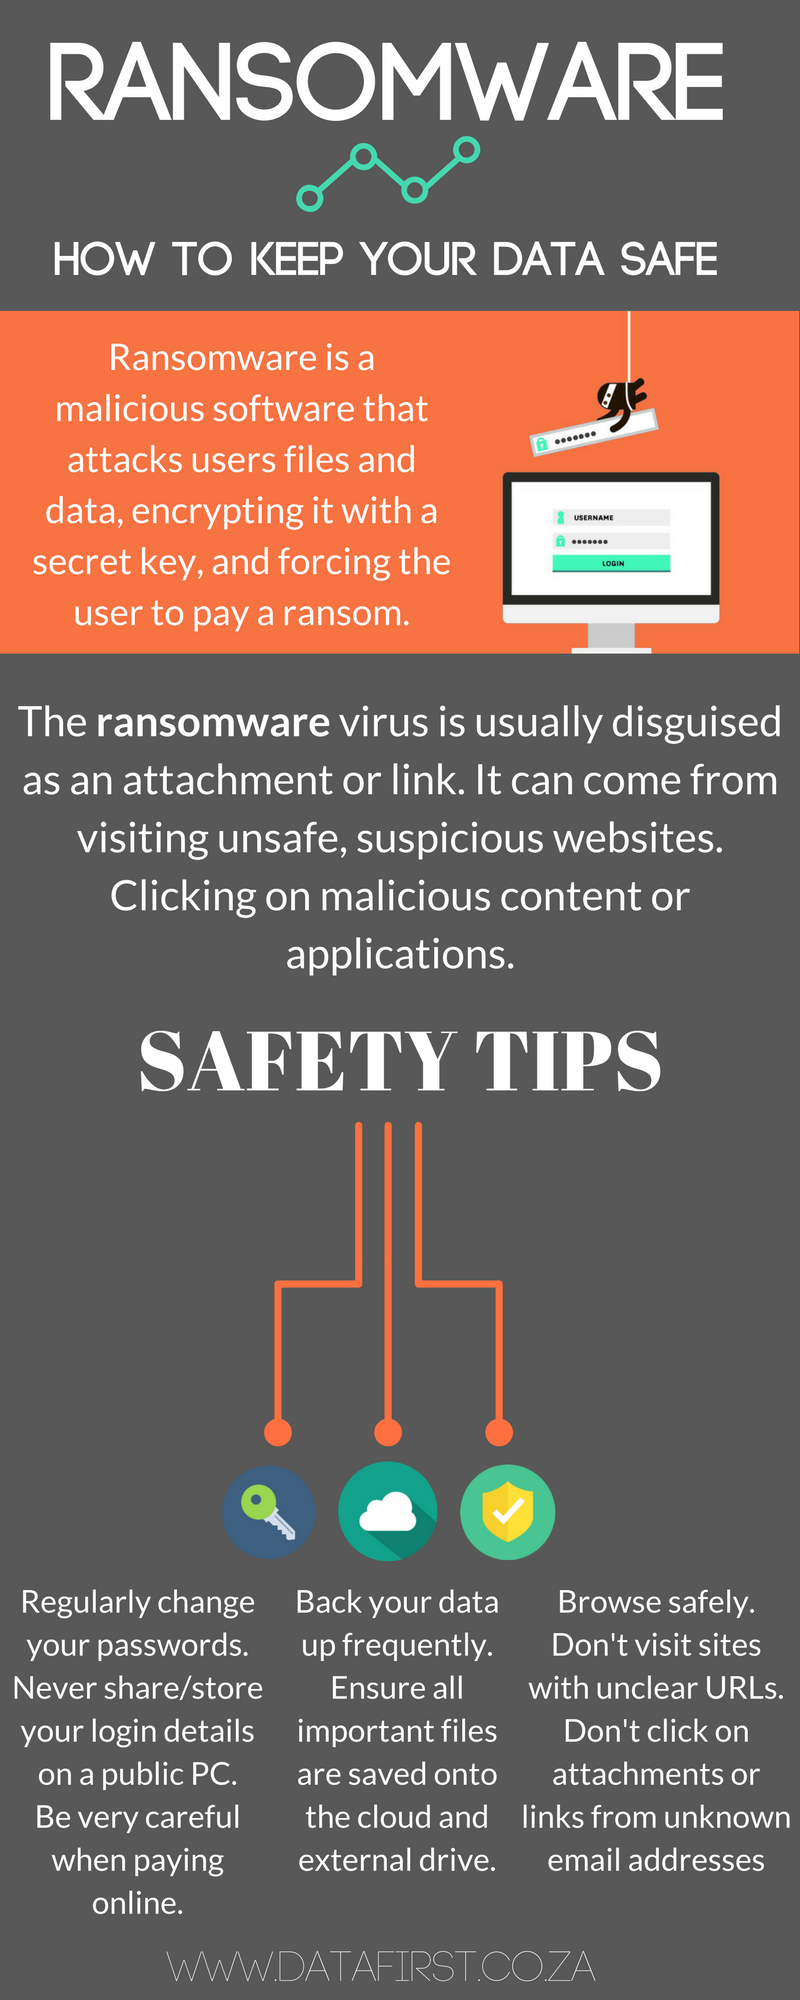 ransomware-infographic